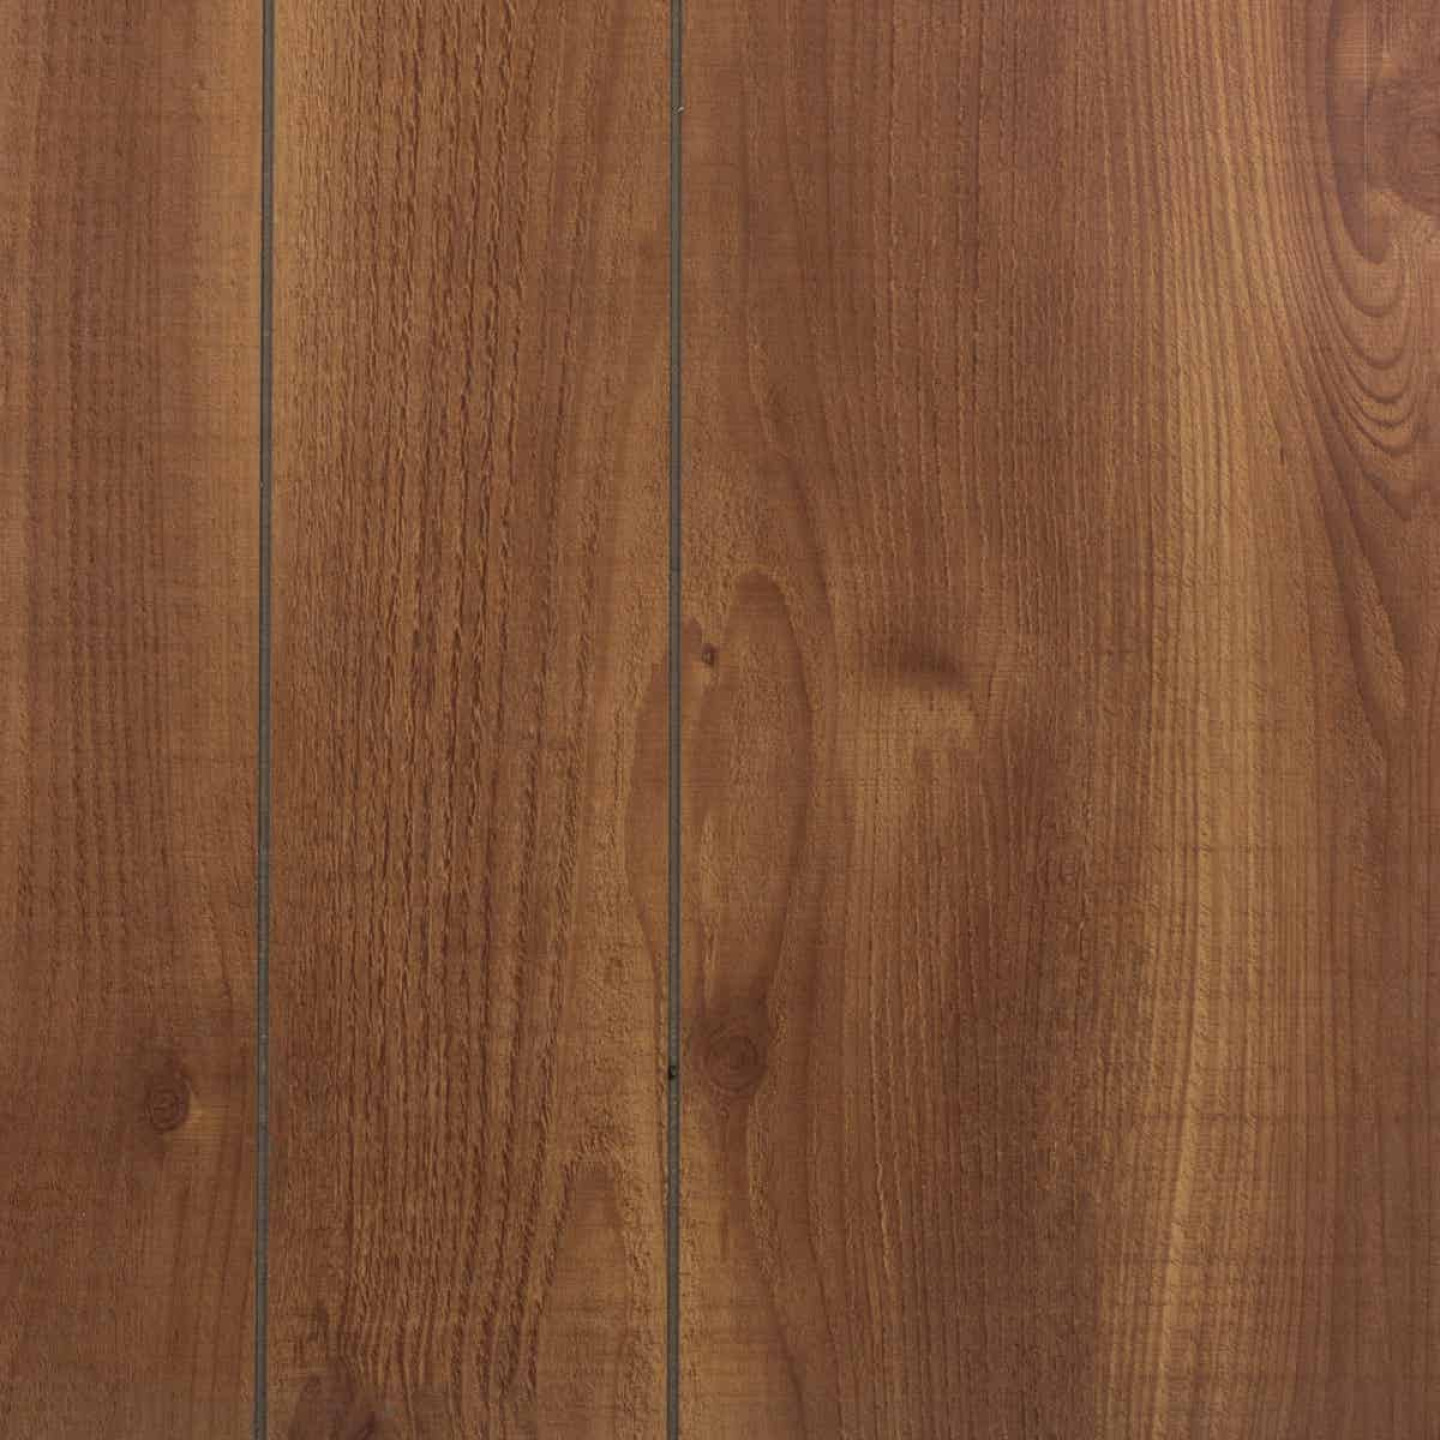 Global Product Sourcing 4 Ft. x 8 Ft. x 1/8 In. Cafe Cedar Random Groove Profile Wall Paneling Image 1